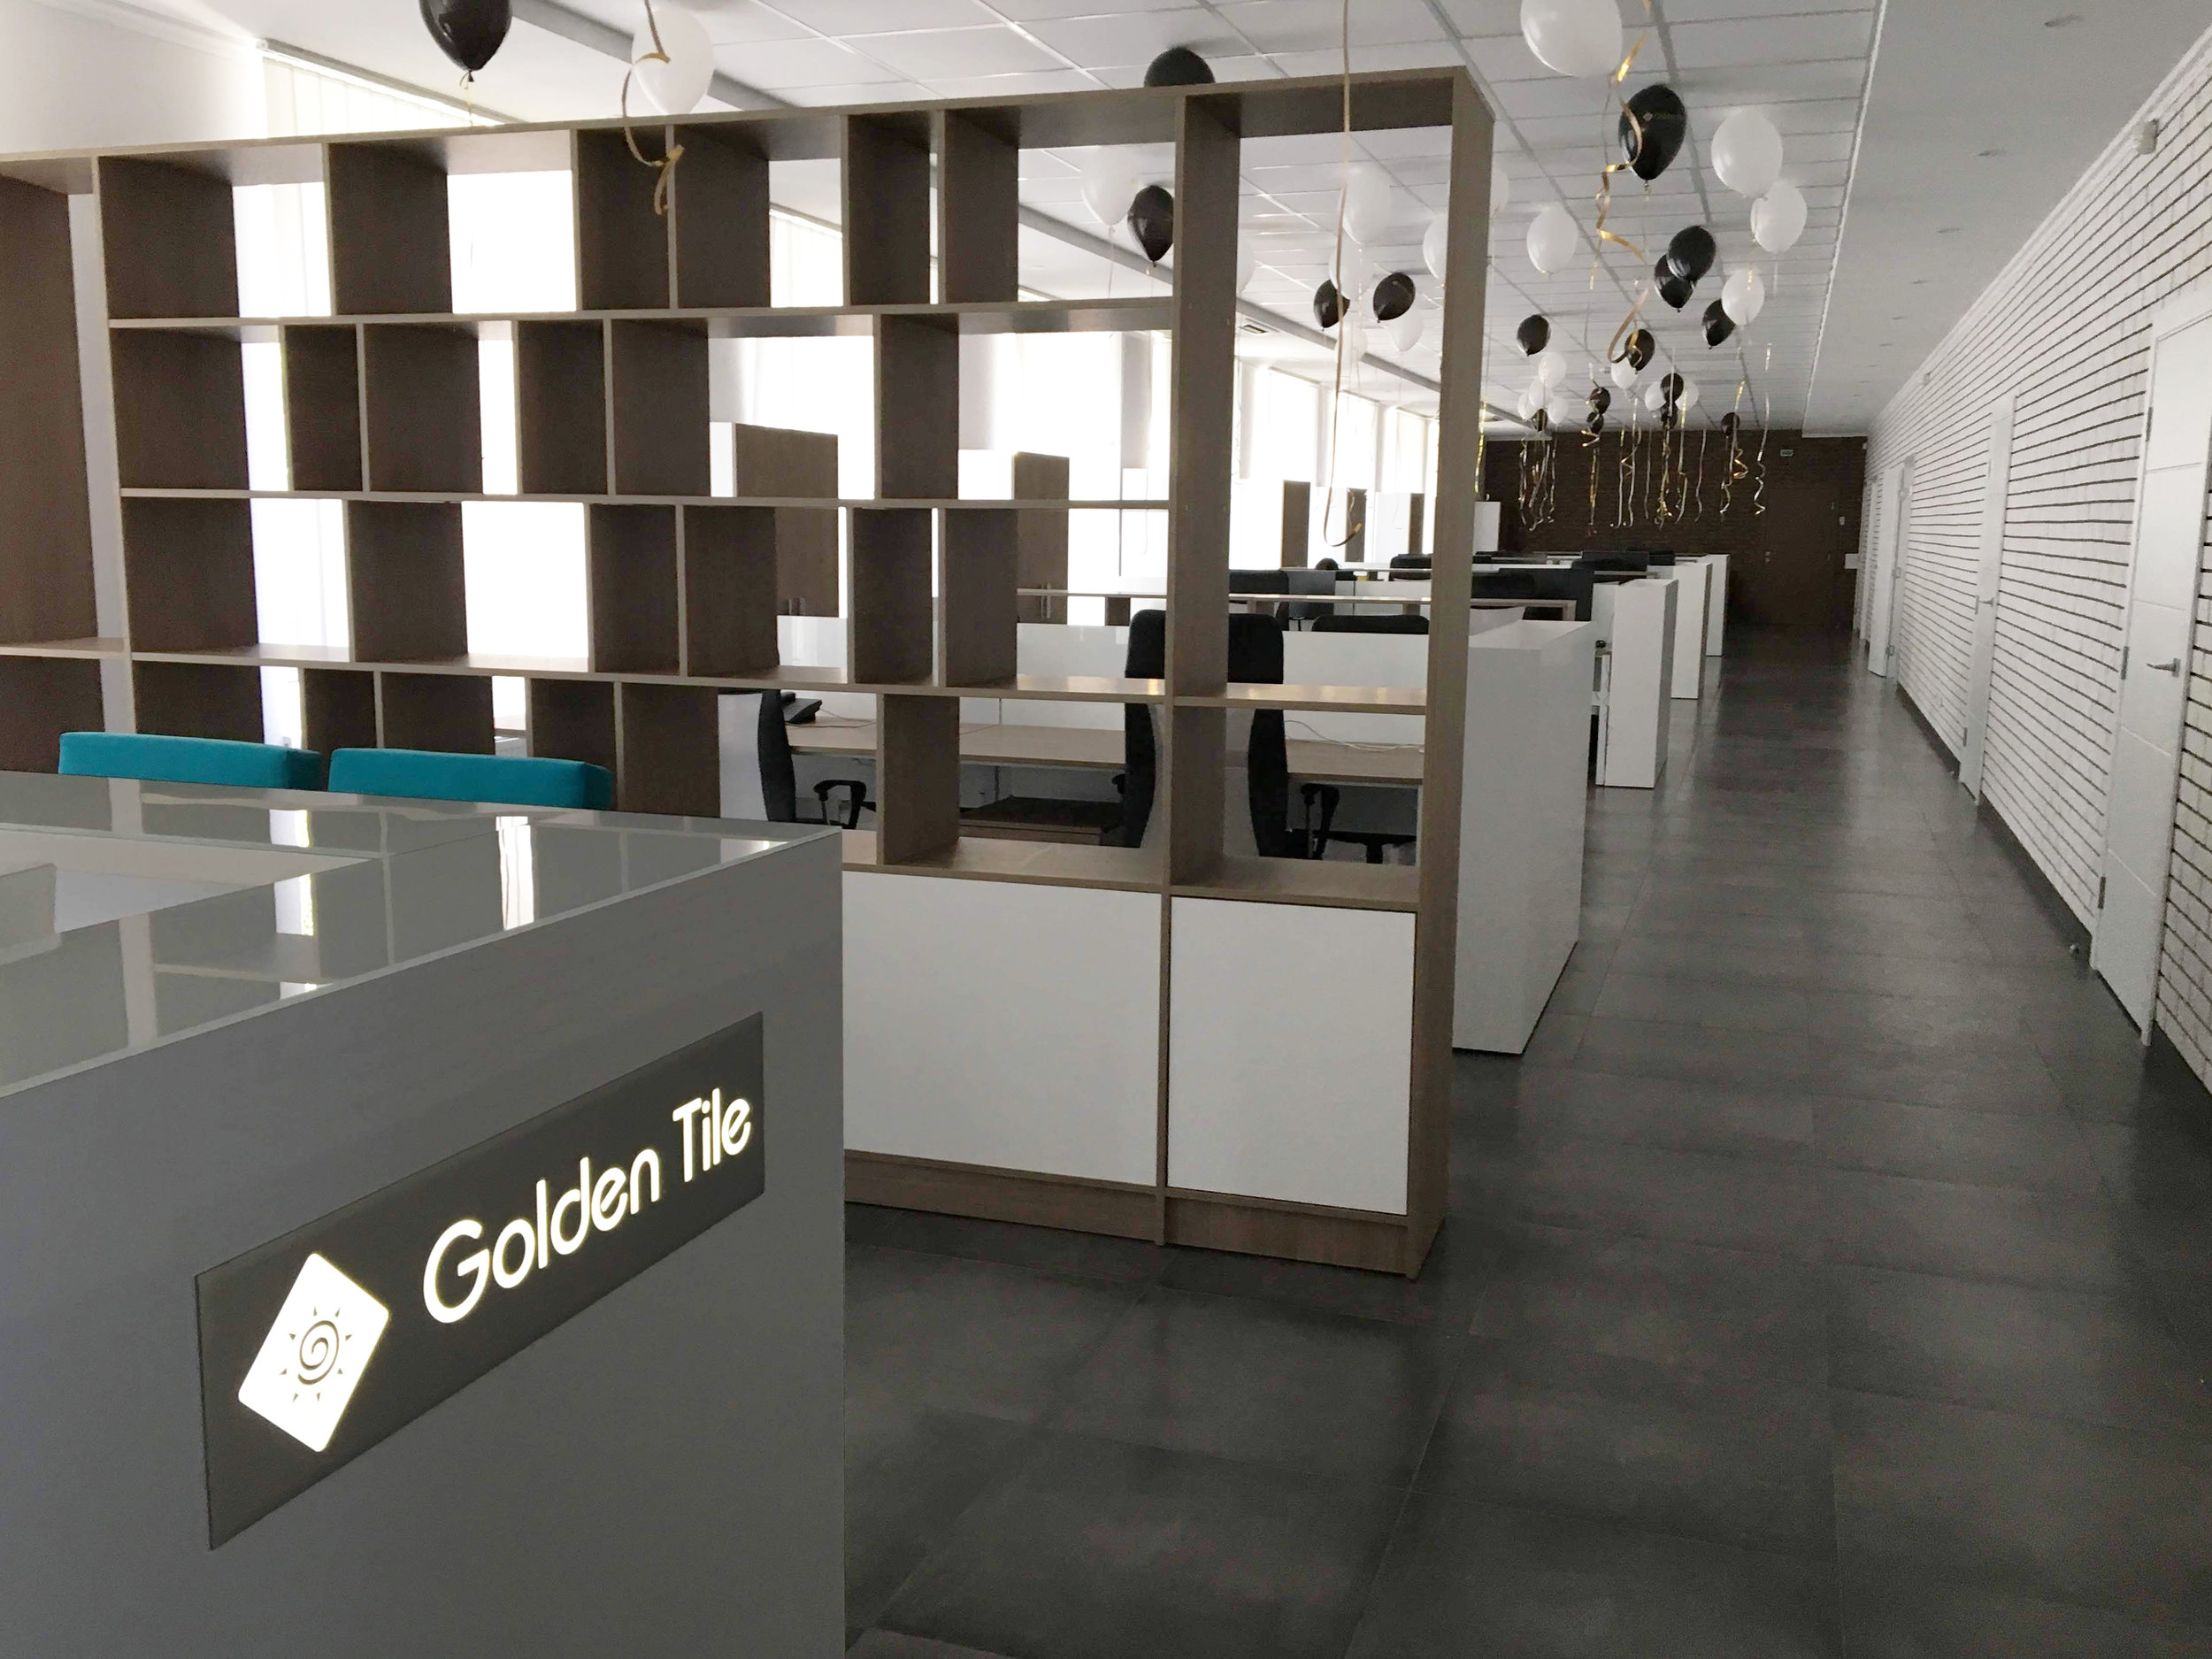 Golden Tile - Types of works: construction and decorativwe works, complete furnishing of the premise